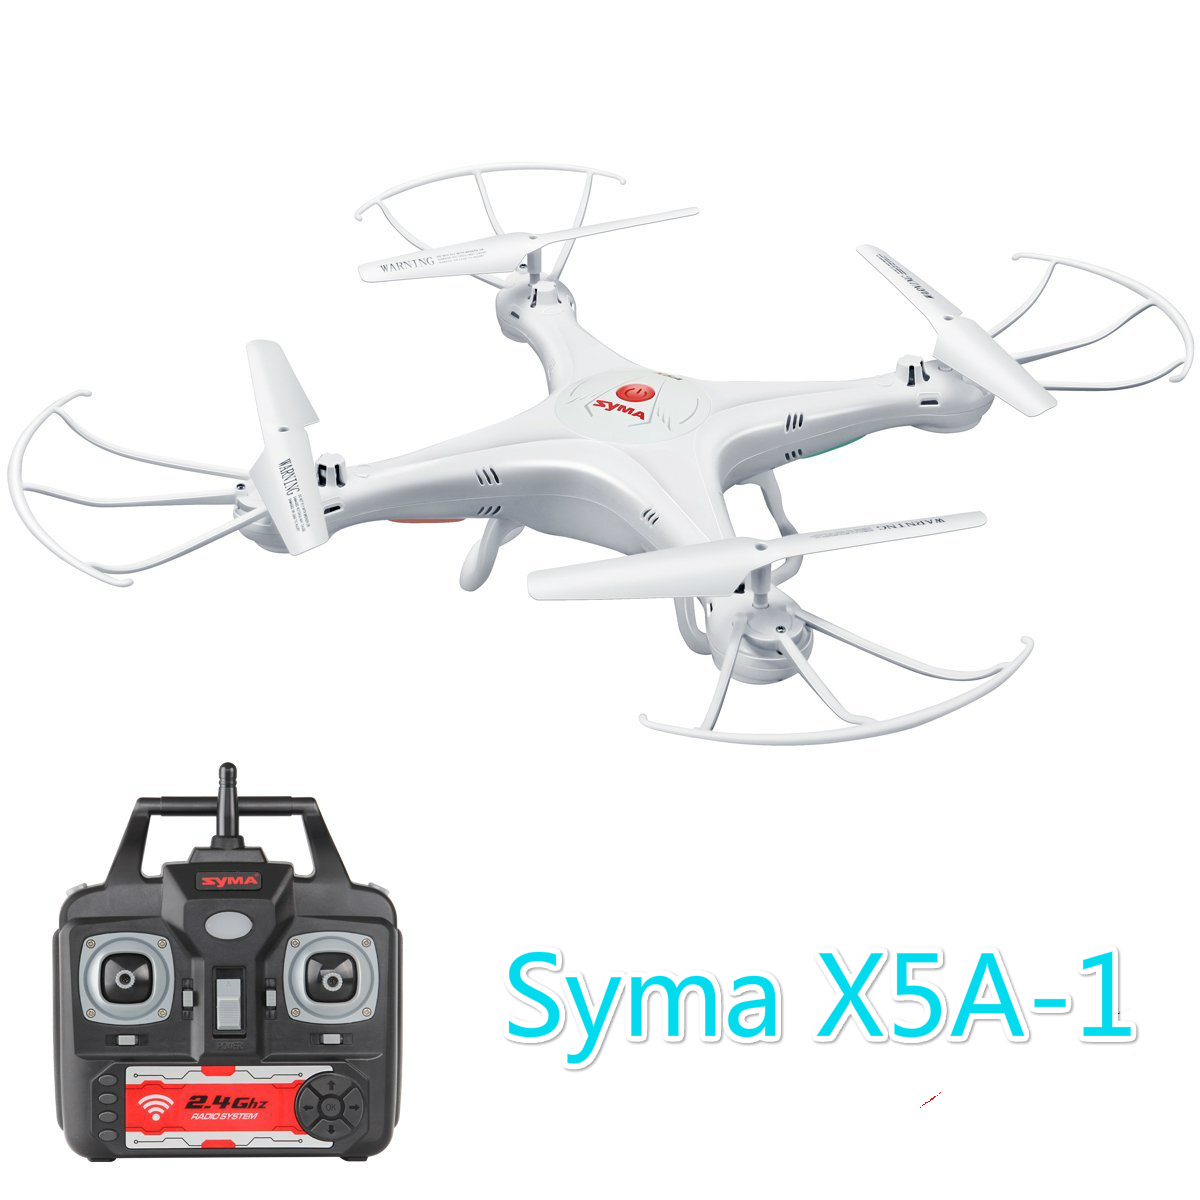 New Version Syma X5A-1 2.4G 6 Axis GYRO RC Quadcopter Drone RTF RC Helicopter